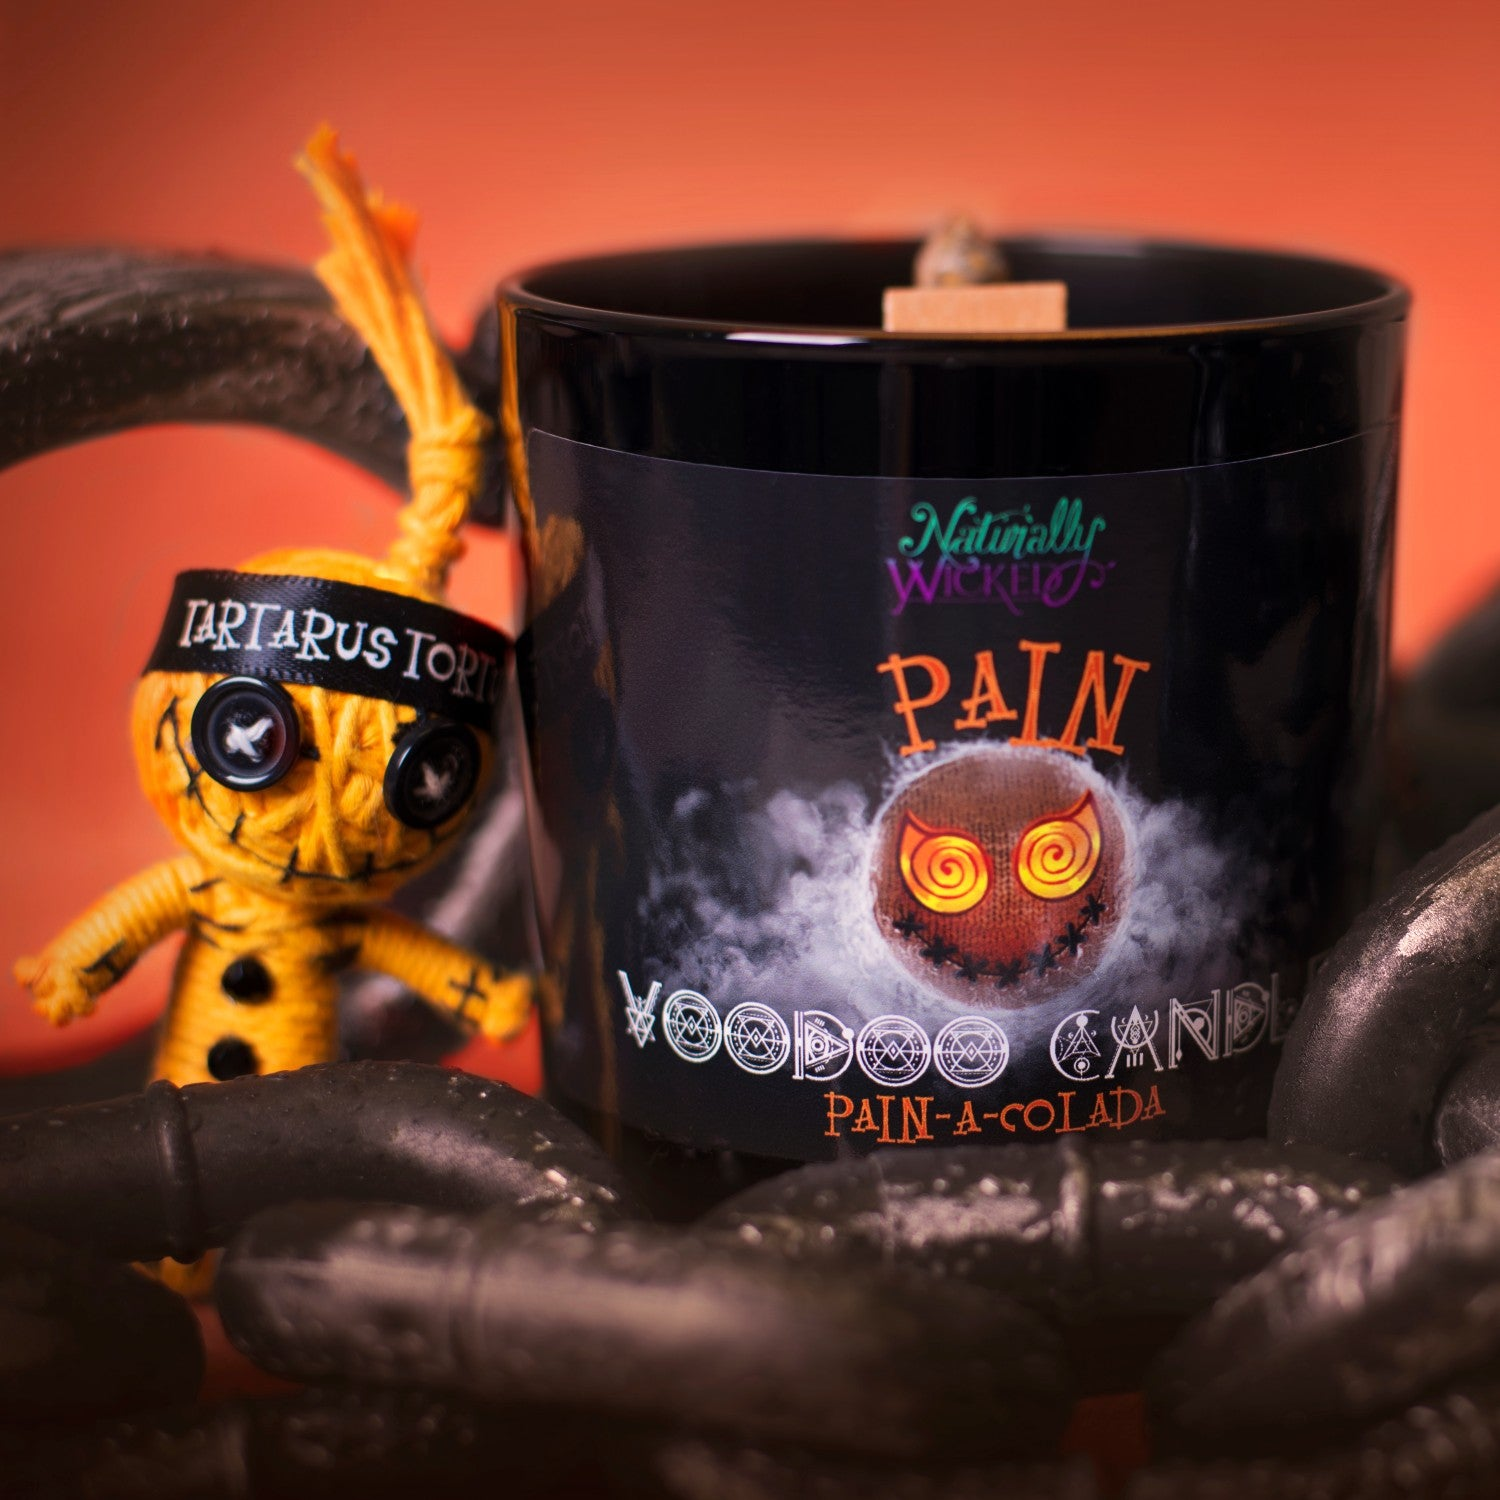 Naturally Wicked Voodoo Pain Spell Candle Amongst Torture Chains & Orange Voodoo Pain Doll